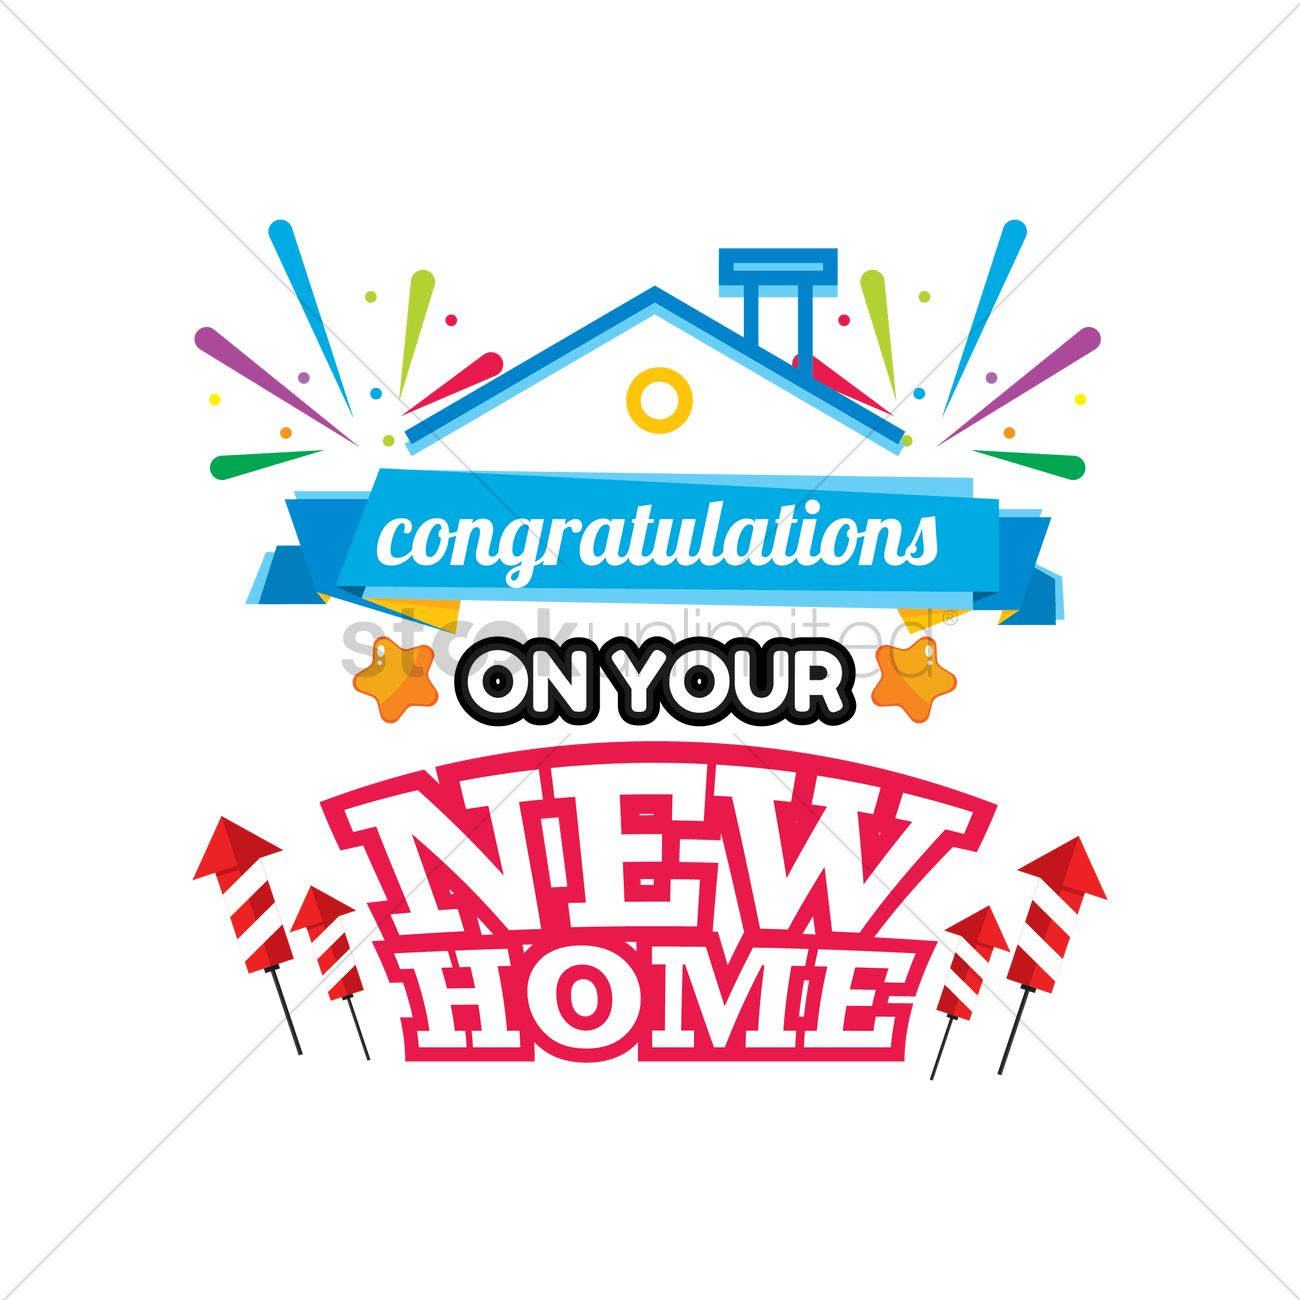 congratulations on your new home label vector image